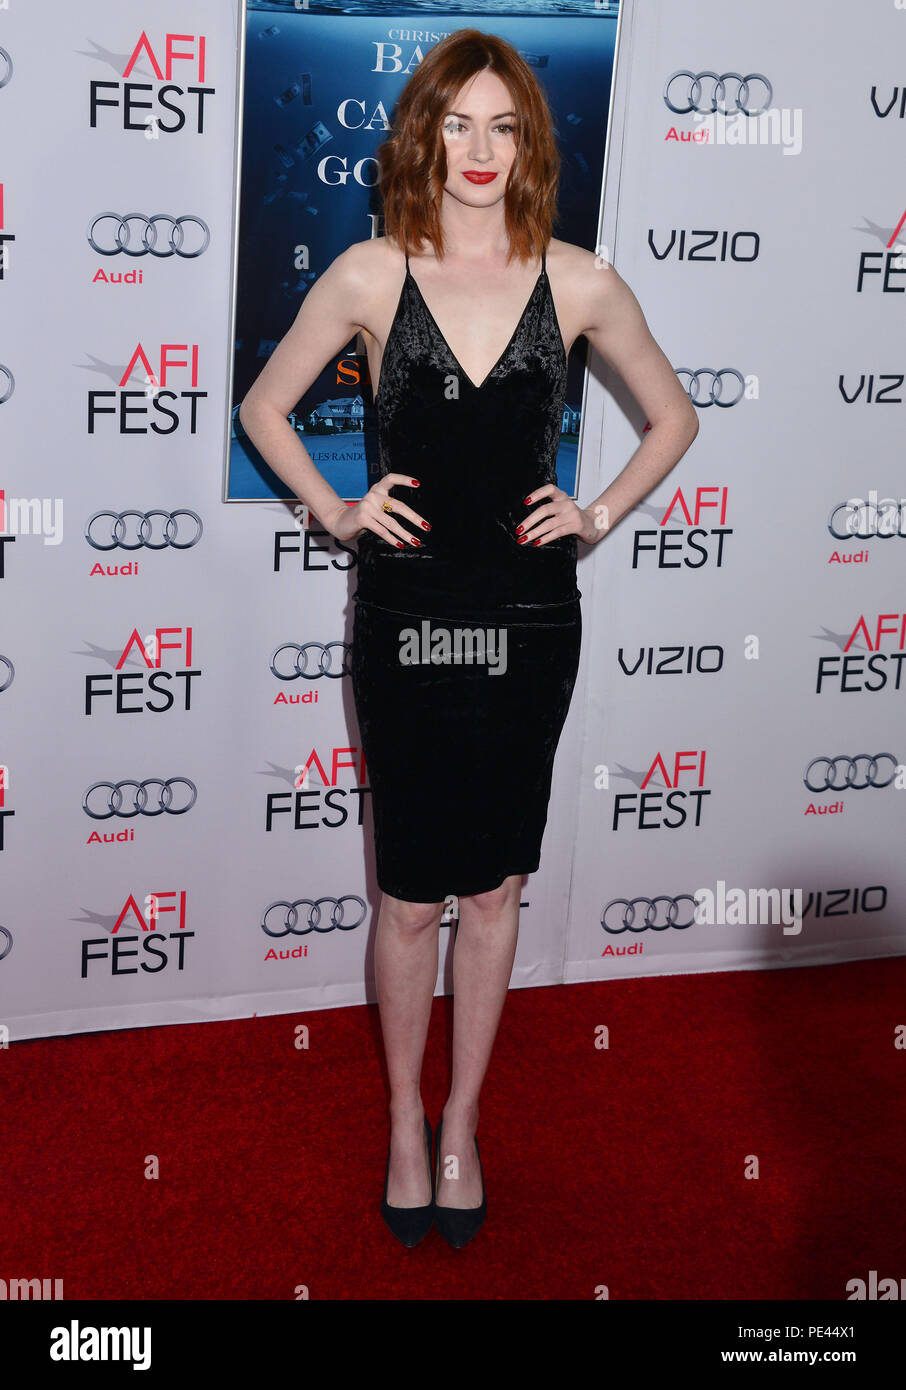 e2b56736e321 Karen Gillan 053 at the Big Short Premiere at the TCL Chinese Theatre in Los  Angeles